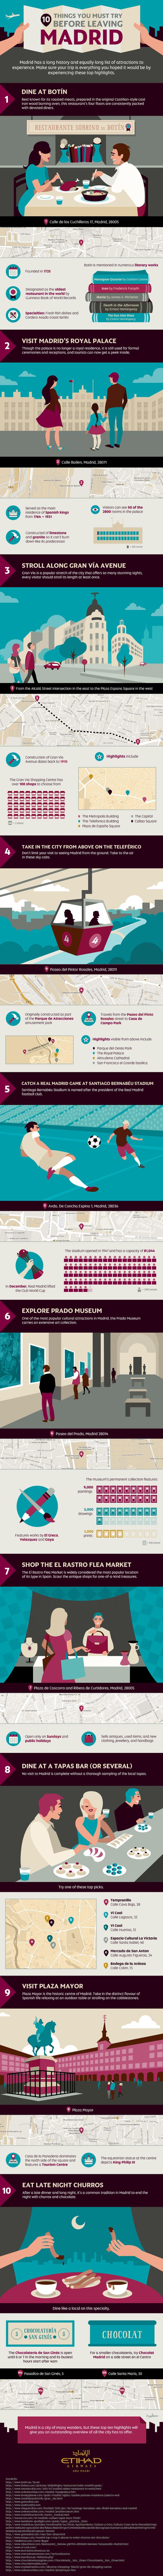 Ten Things to Try Before Leaving #Madrid - Do you fancy an infographic?  There are a lot of them online, but if you want your own please visit http://www.linfografico.com/prezzi/  Online girano molte infografiche, se ne vuoi realizzare una tutta tua visita http://www.linfografico.com/prezzi/